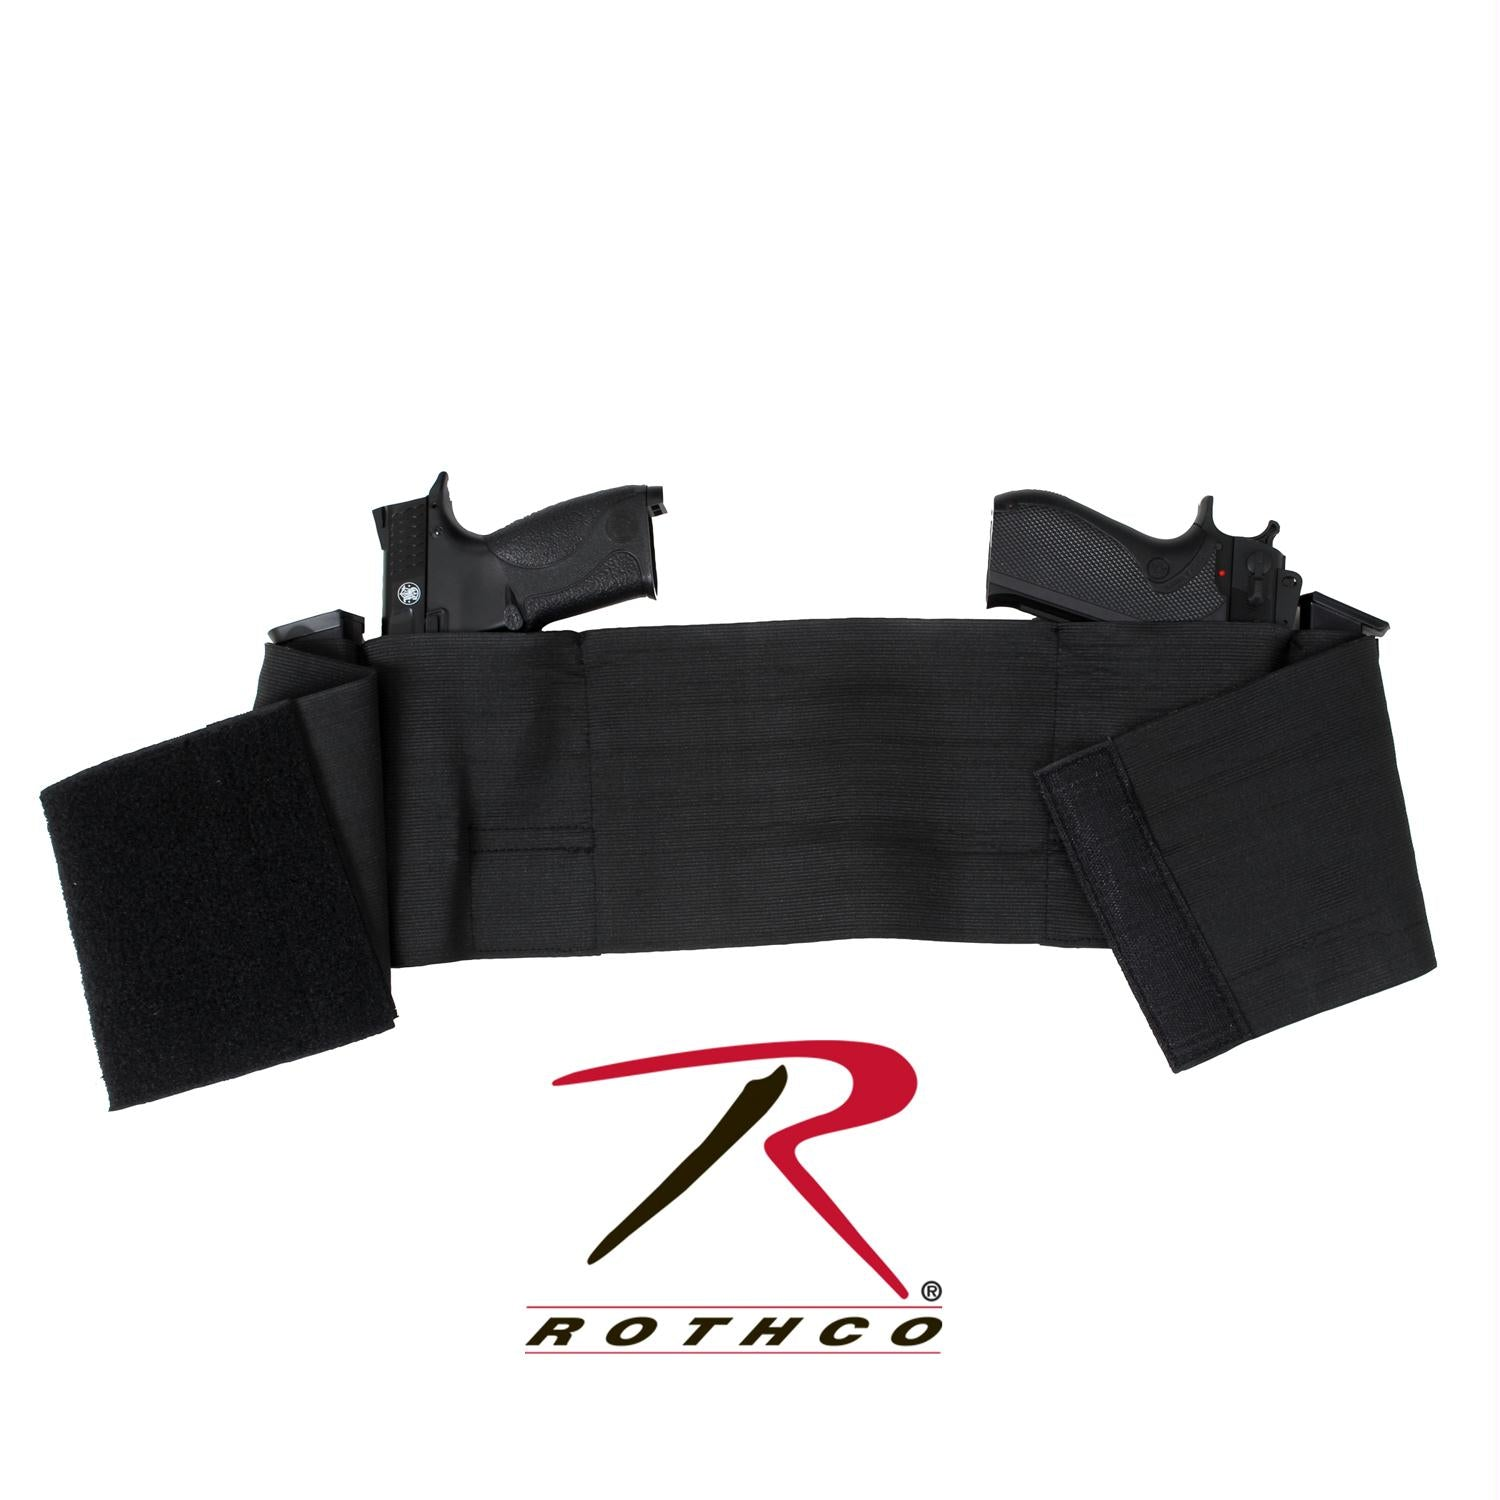 Rothco Ambidextrous Concealed Elastic Belly Band Holster